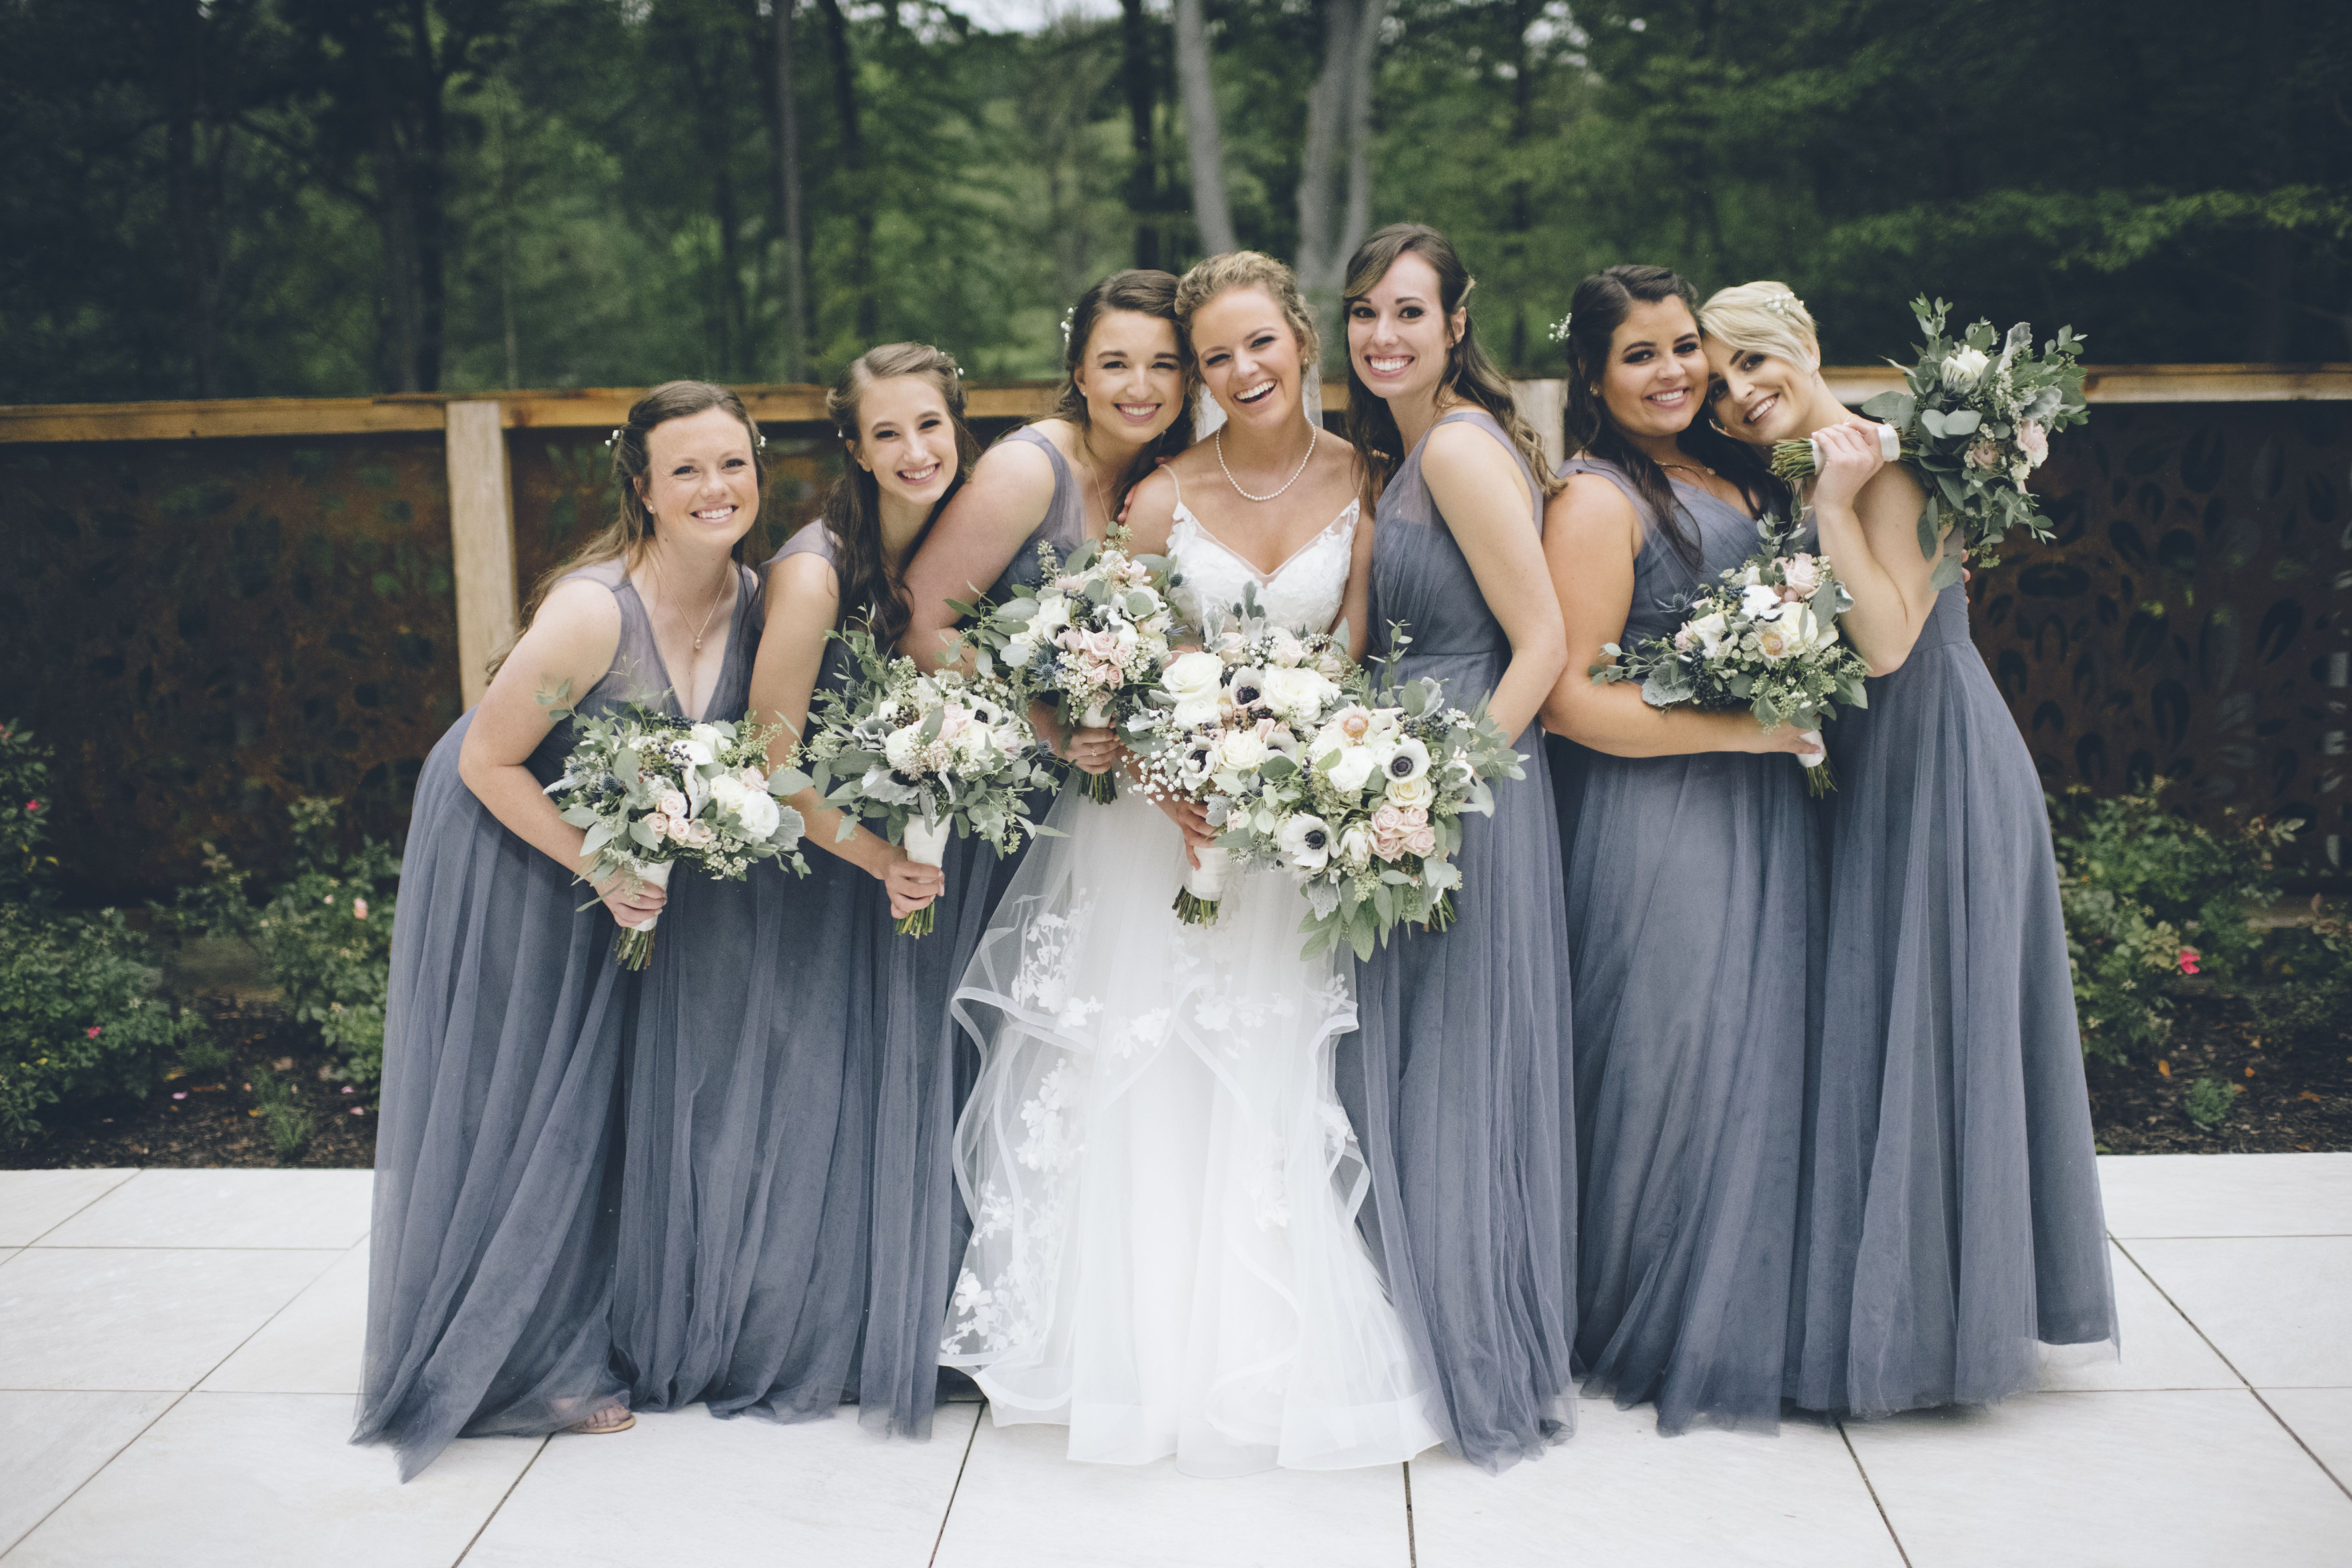 7c14d3b5f6 Jenny selected the Jenny Yoo Emelie dress in Hydrangea for her bridesmaids!  Photographer  Mindy Sue Photography- Mindy Lamprecht at  mindysue000 gmail.com ...